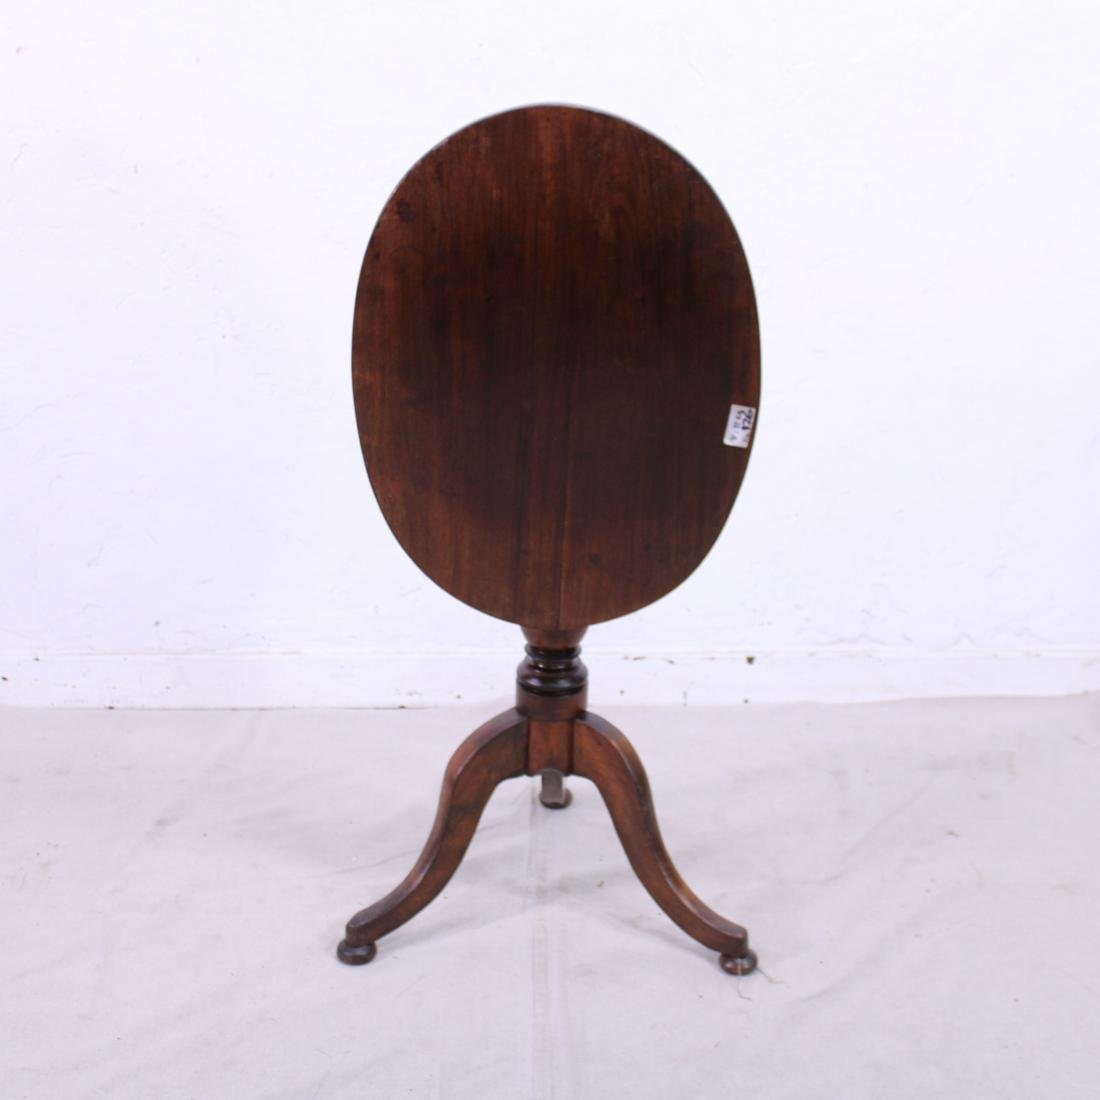 Georgian Tilt Top Table in Mahogany c. 1920